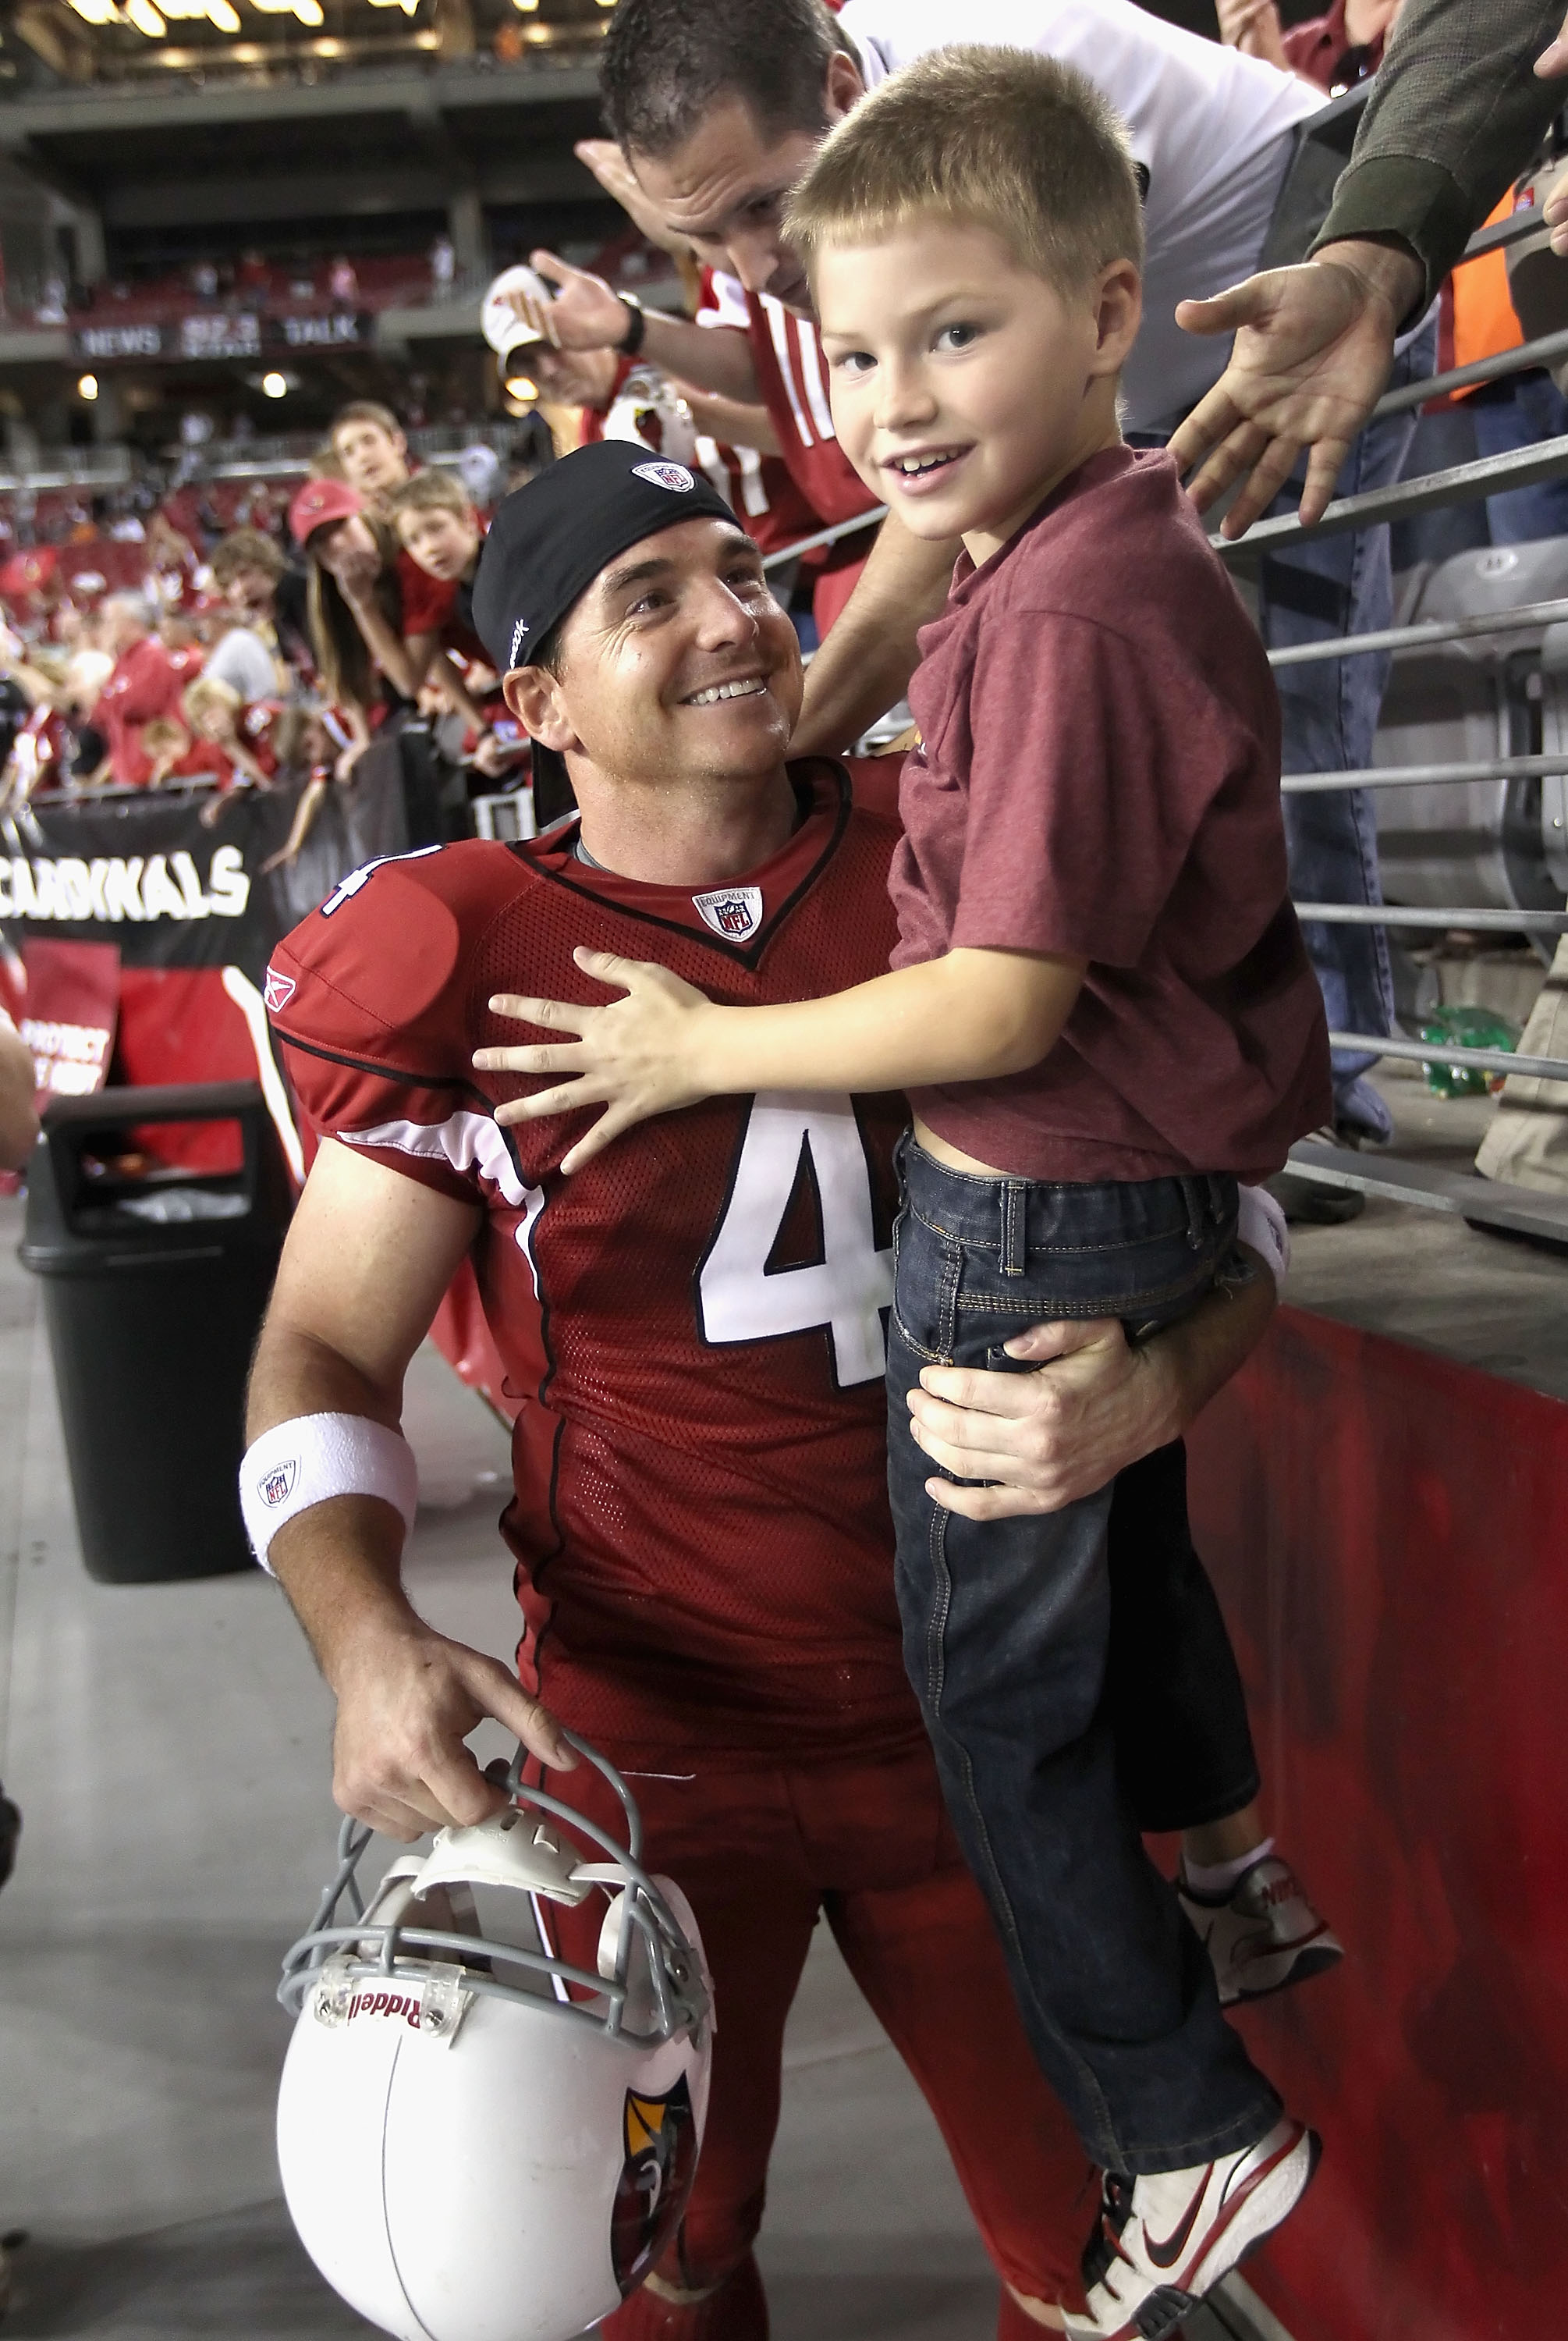 GLENDALE, AZ - DECEMBER 12:  Kicker Jay Feely #4 of the Arizona Cardinals lifts his son Jace out of the crowd following the NFL game against the Denver Broncos at the University of Phoenix Stadium on December 12, 2010 in Glendale, Arizona.  The Cardinals